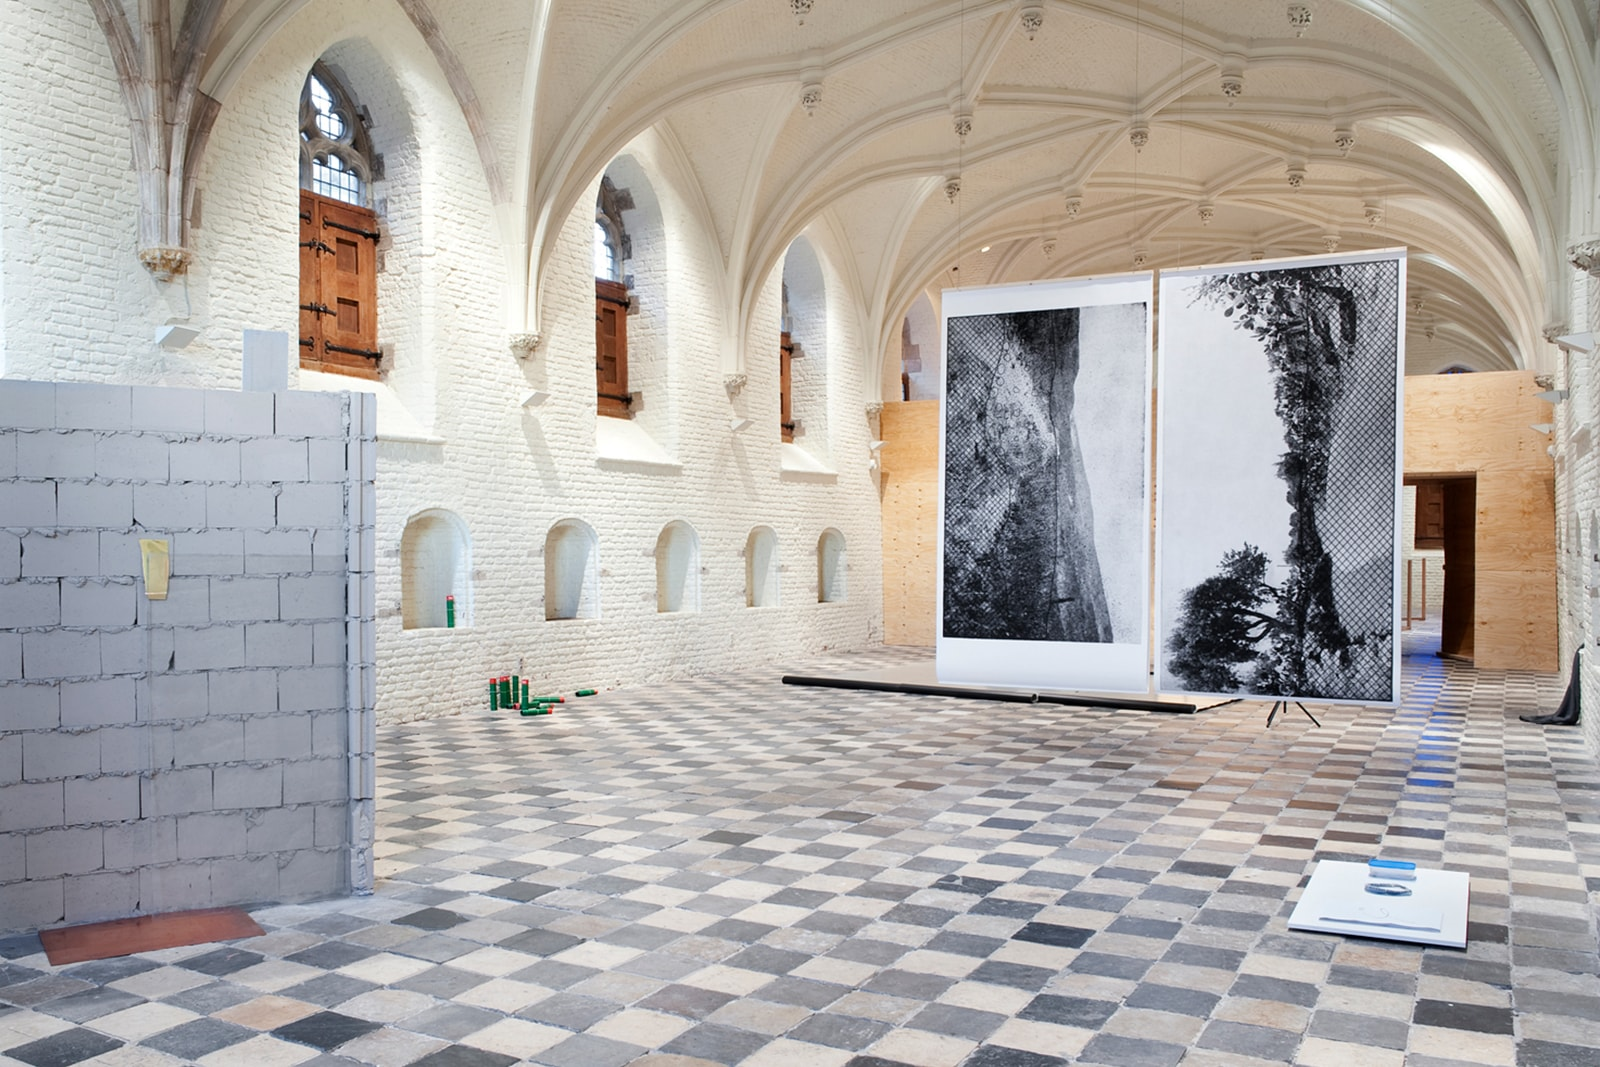 Autum of Modernism - Exhibition overview